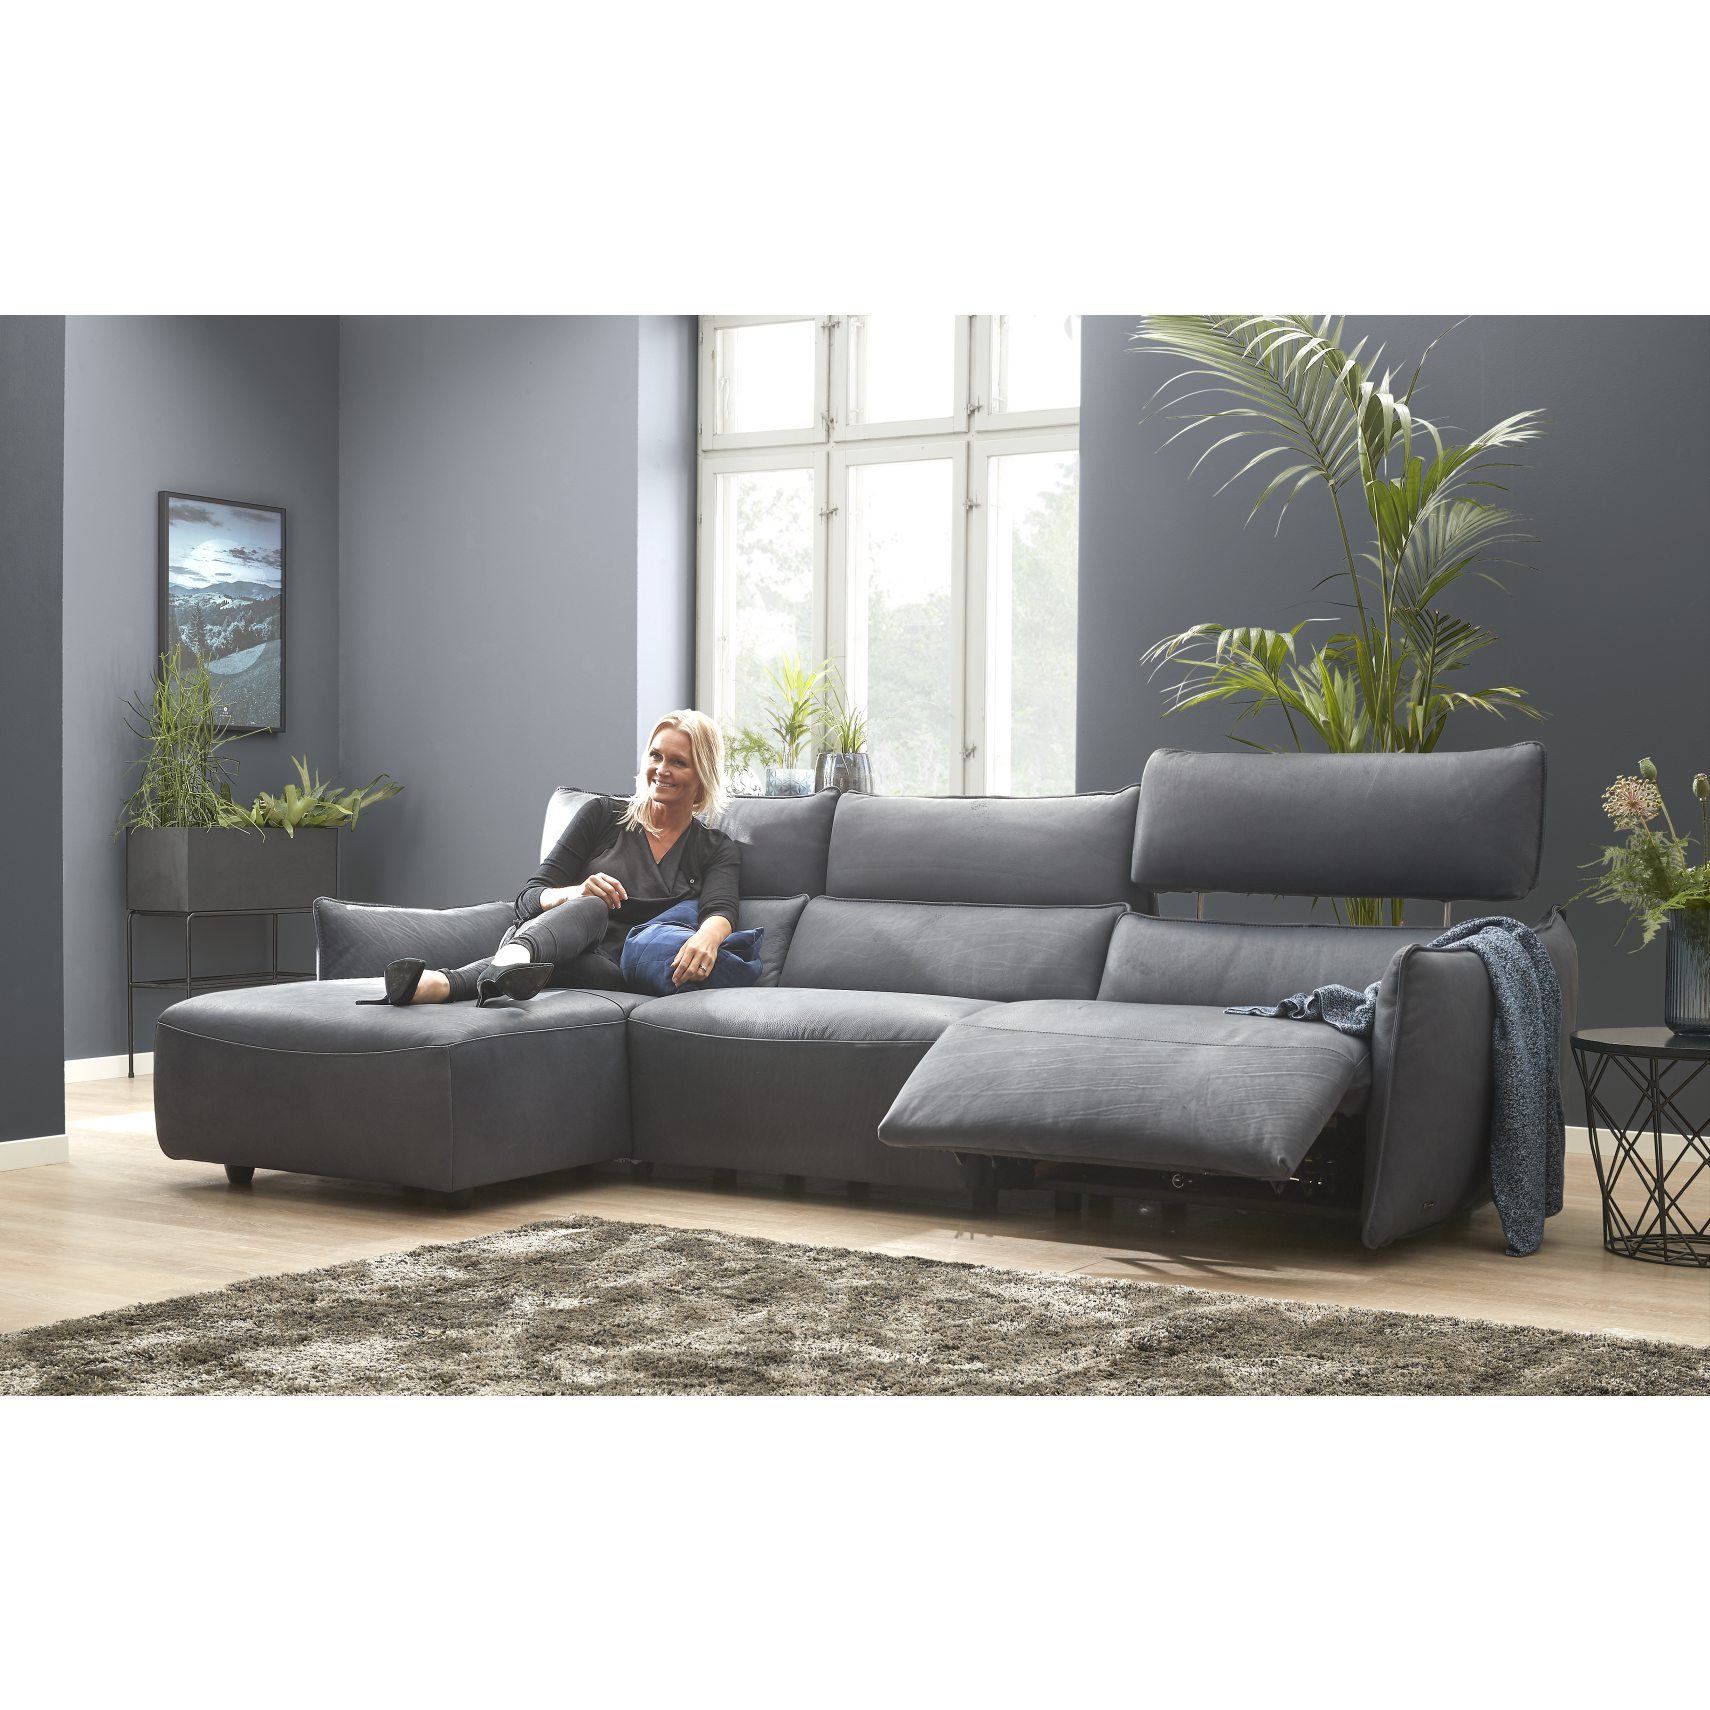 Natuzzi Editions C027 Sofa med chaiselong